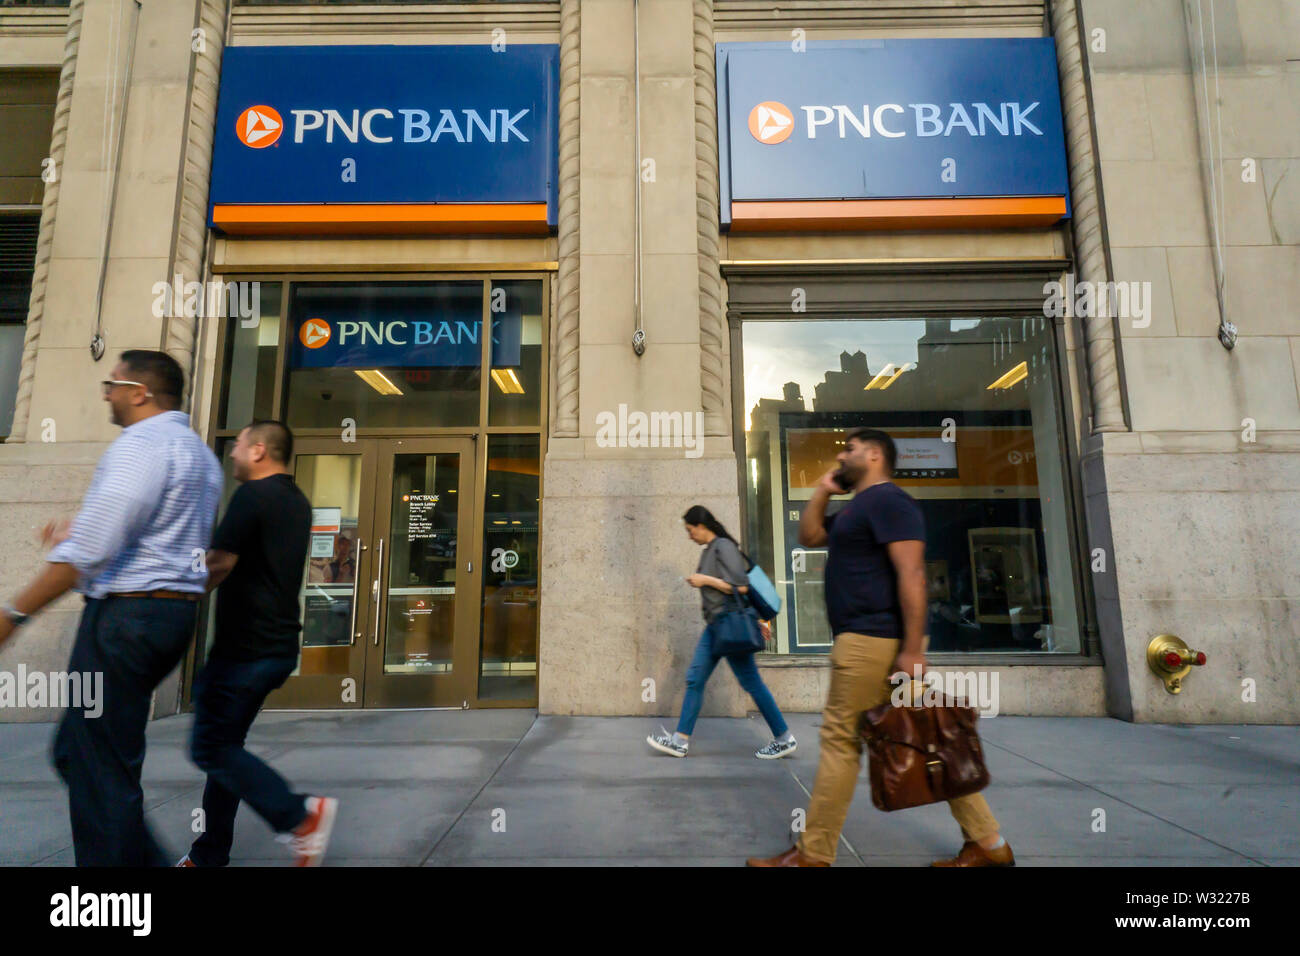 A branch of PNC Bank in New York on Tuesday, July 2, 2019. (© Richard B. Levine) - Stock Image